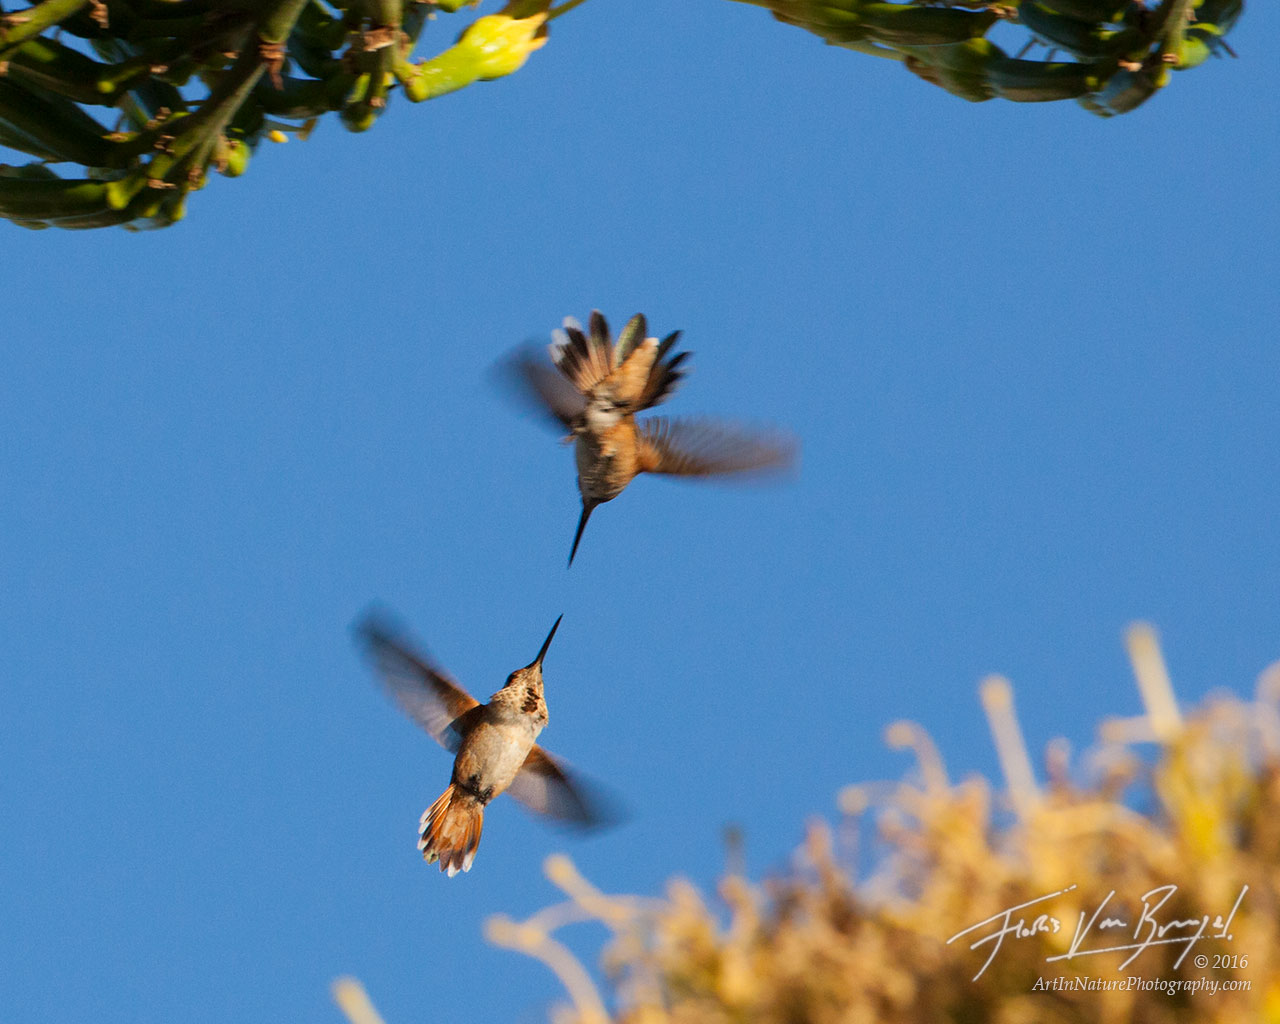 Two Rufous Hummingbirds go at it among the flowers!